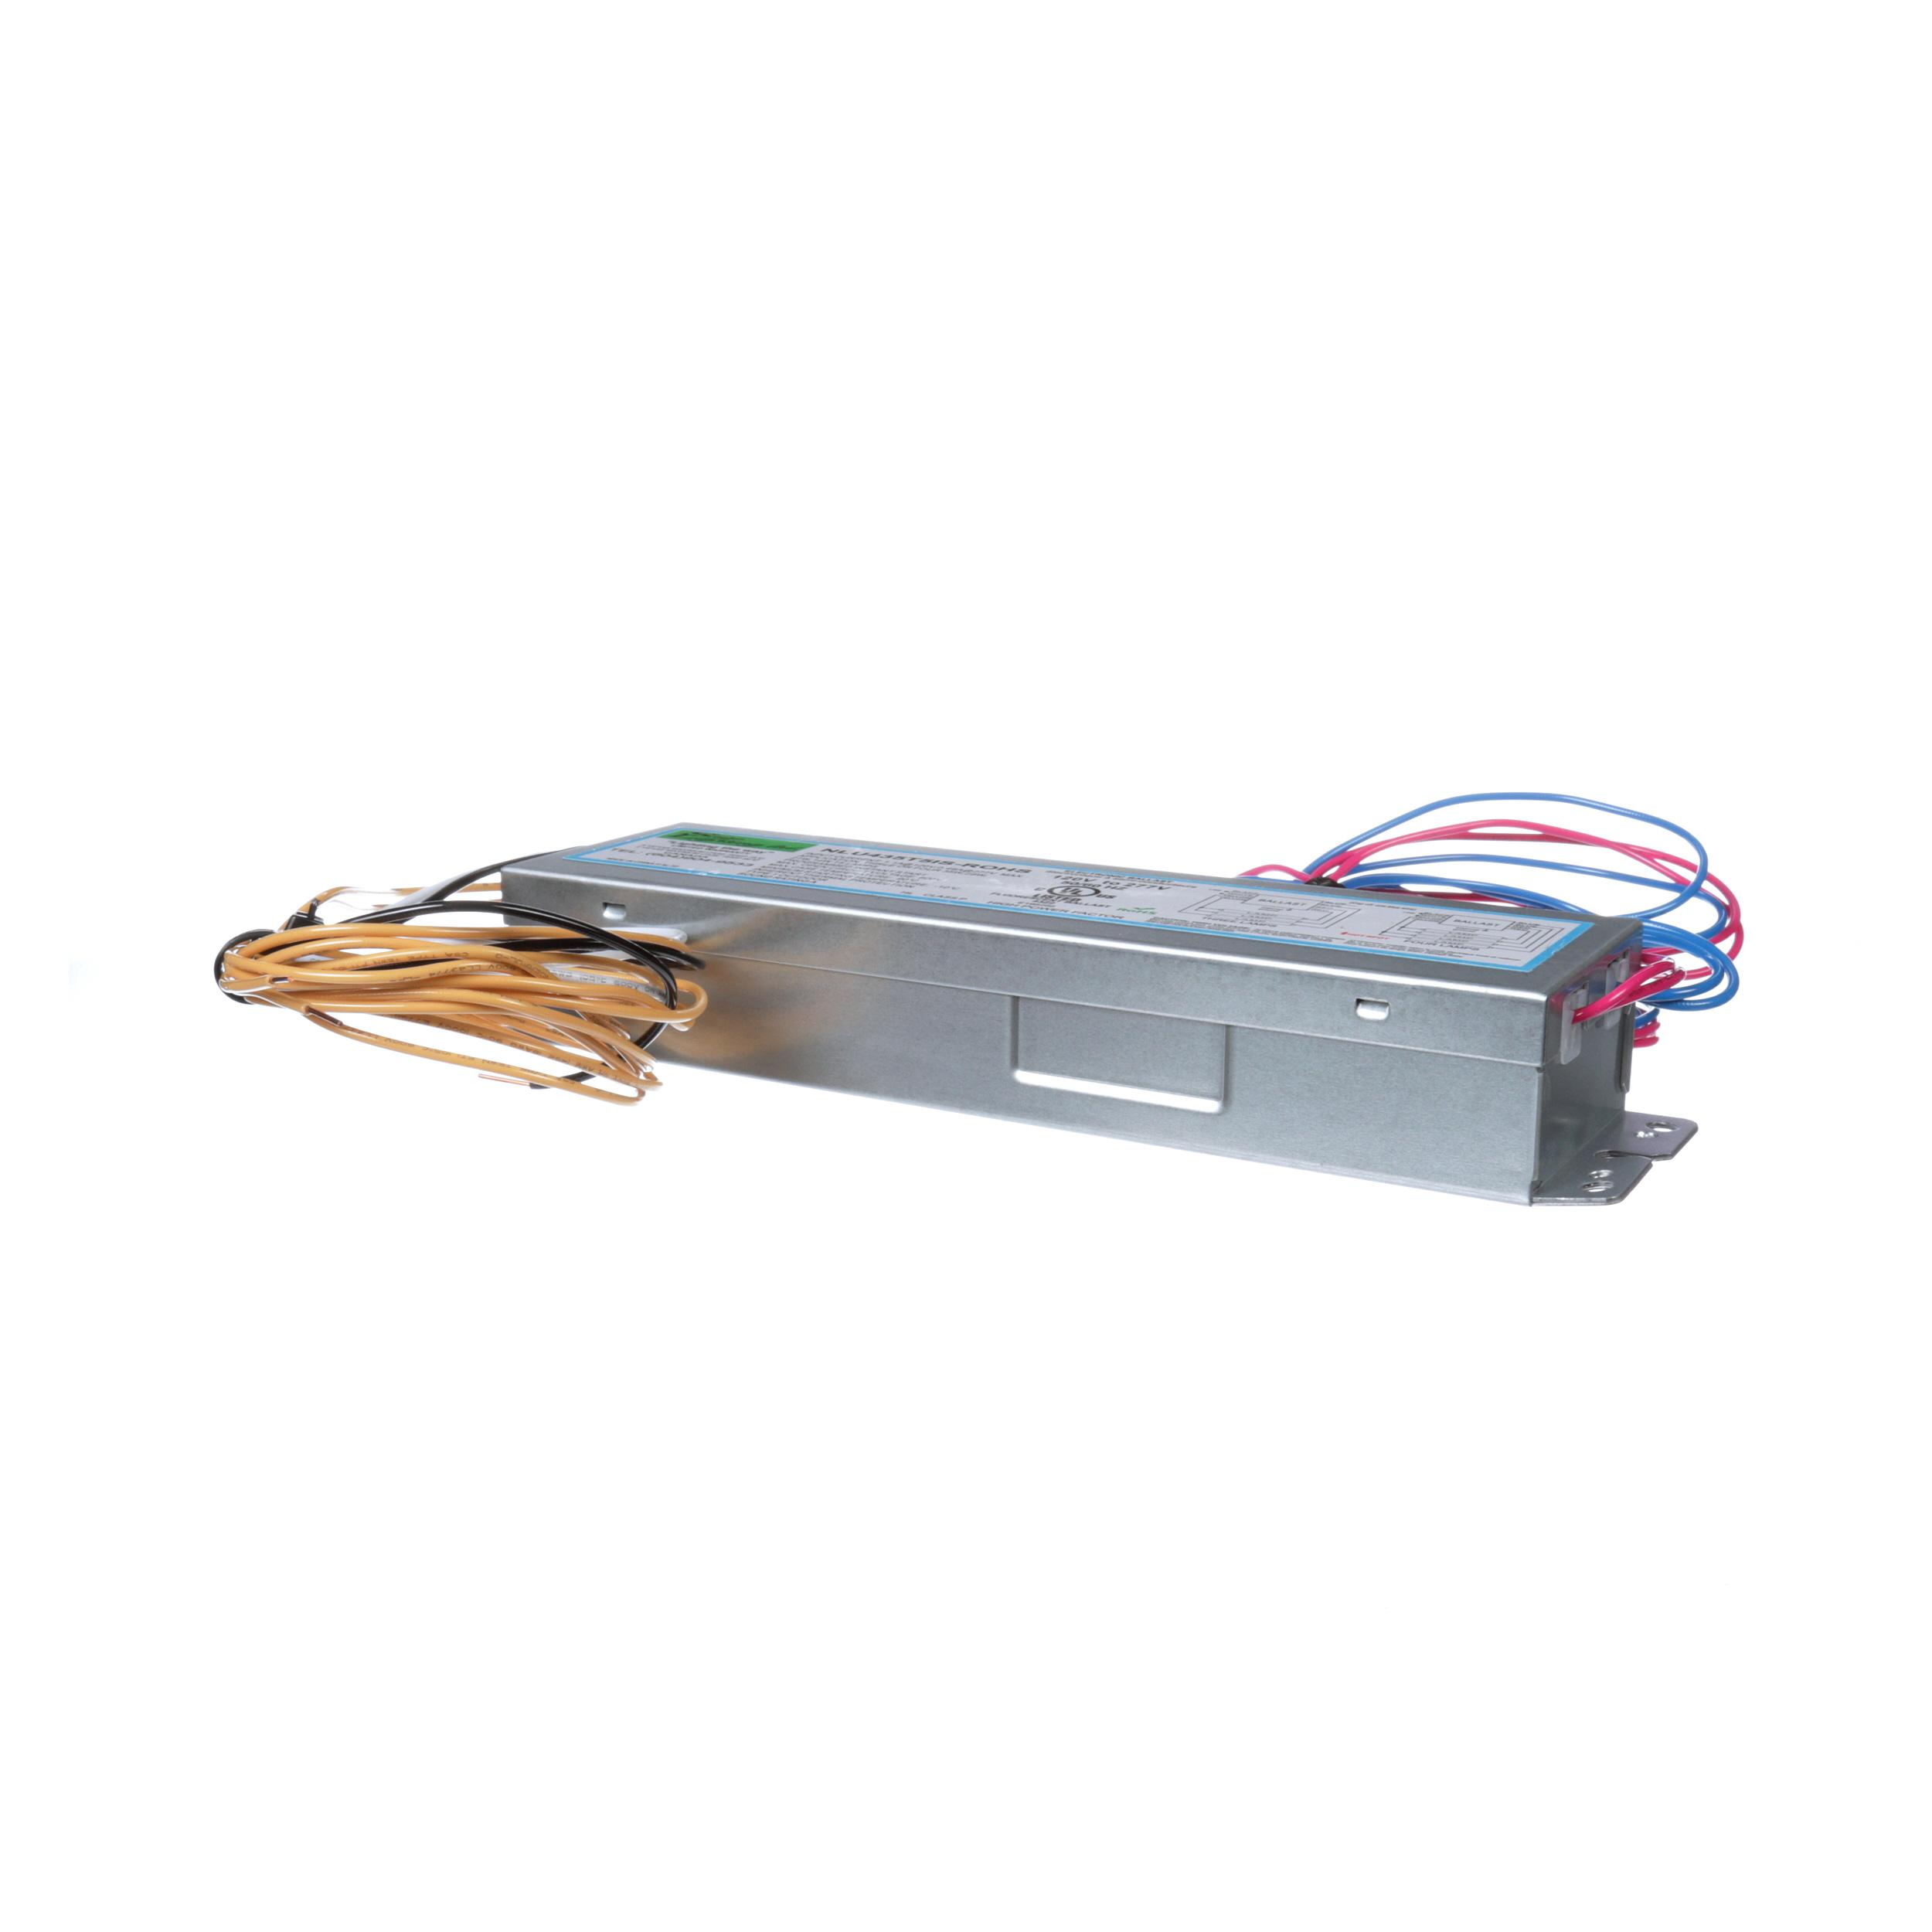 SOUTHERN STORE FIXTURES BALLAST, 3 OR 4 LAMP, SAGNLU435T5ISR